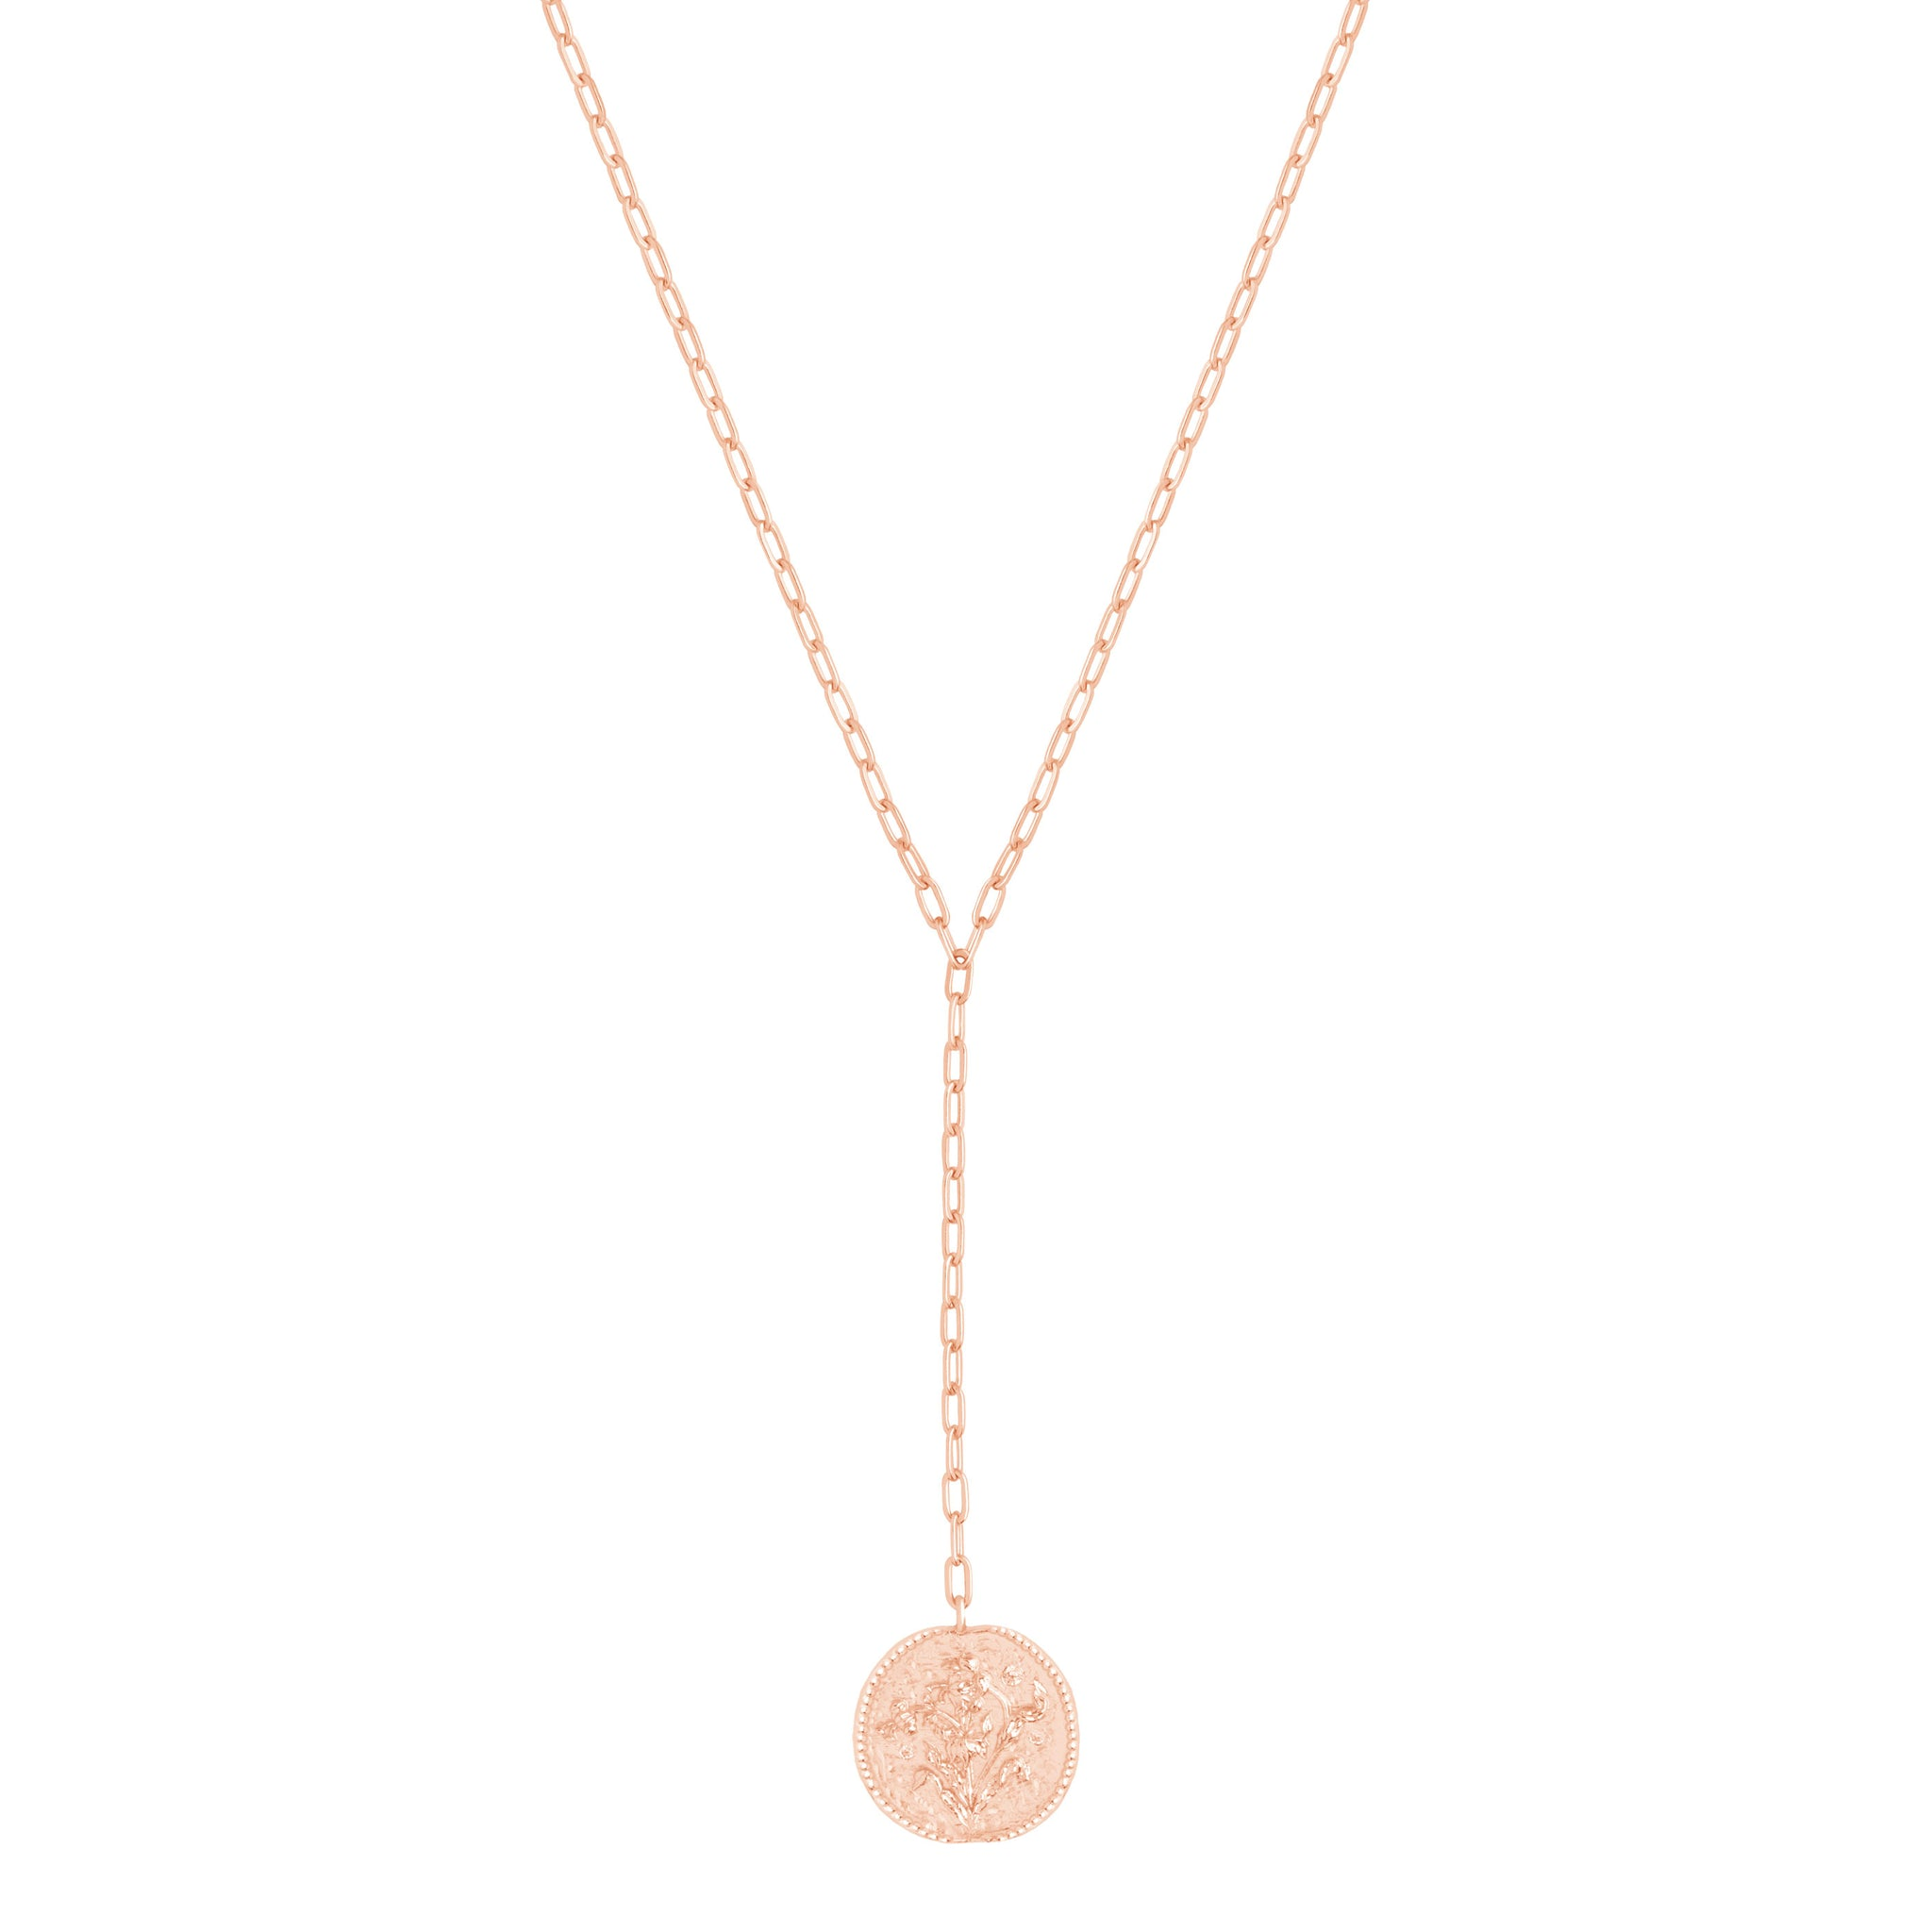 Blossom Coin Lariat Necklace in Rose Gold